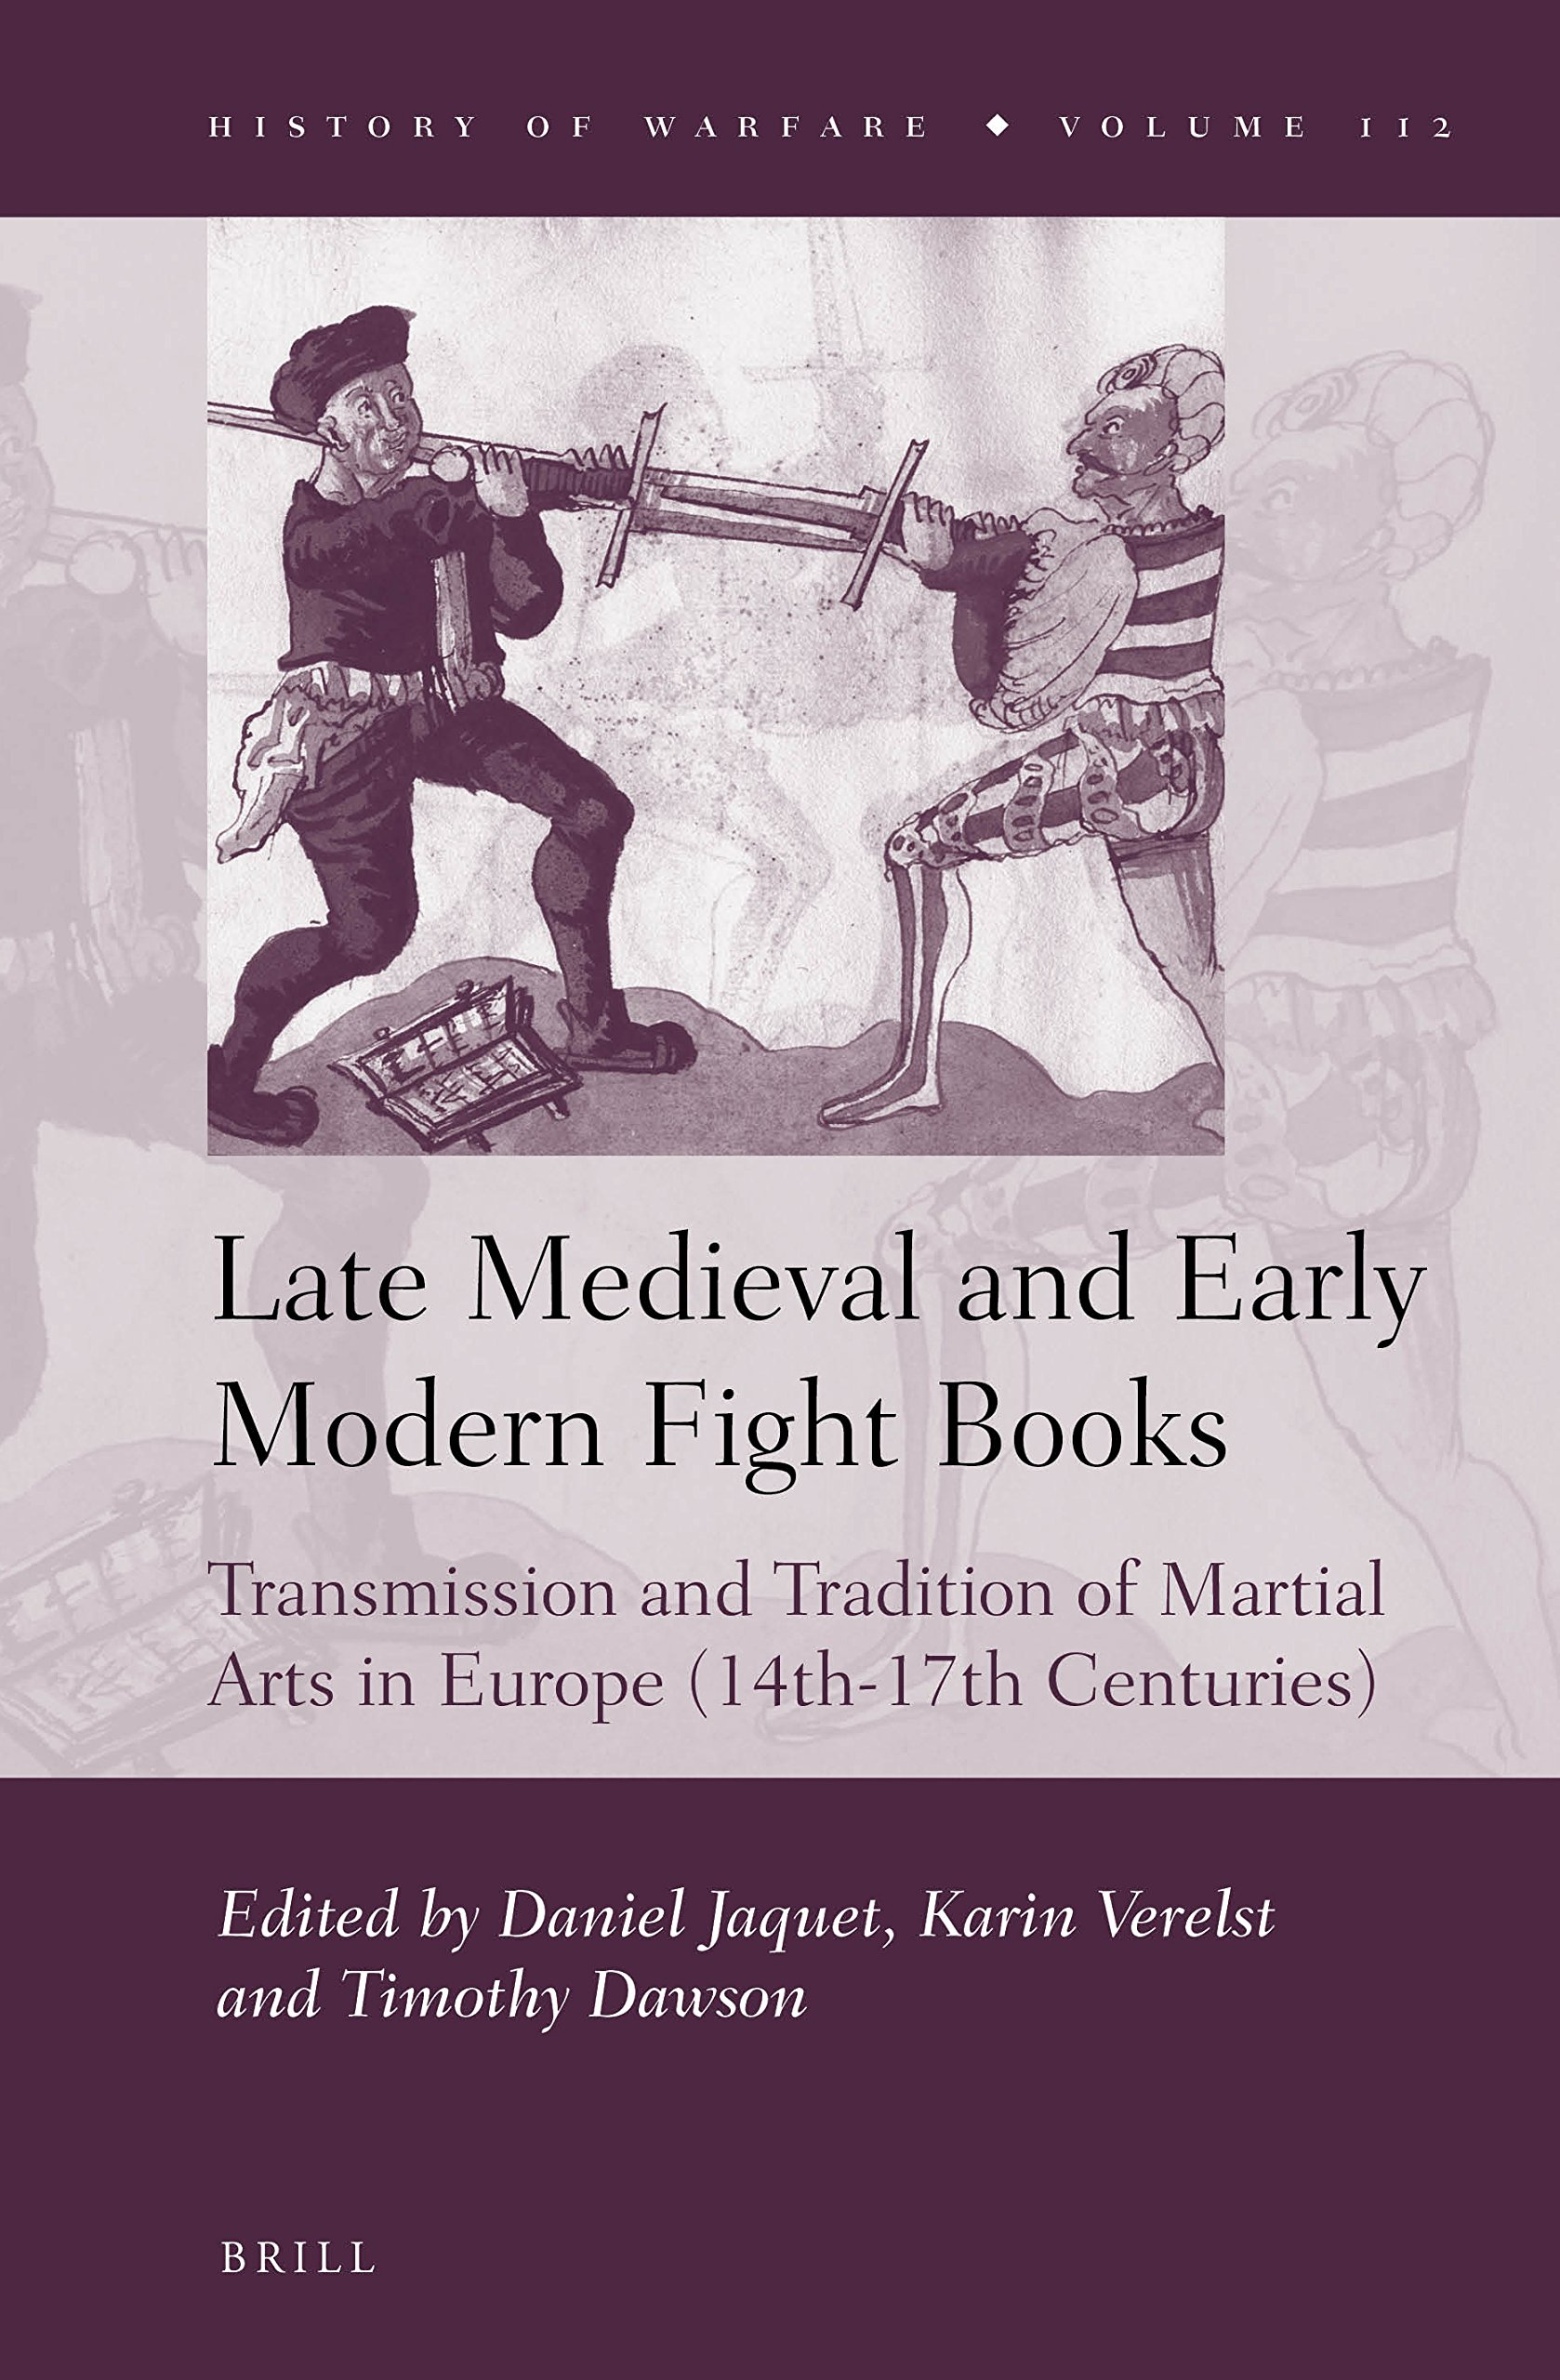 Read Online Late Medieval and Early Modern Fight Books: Transmission and Tradition of Martial Arts in Europe, 14th-17th Centuries (History of Warfare) pdf